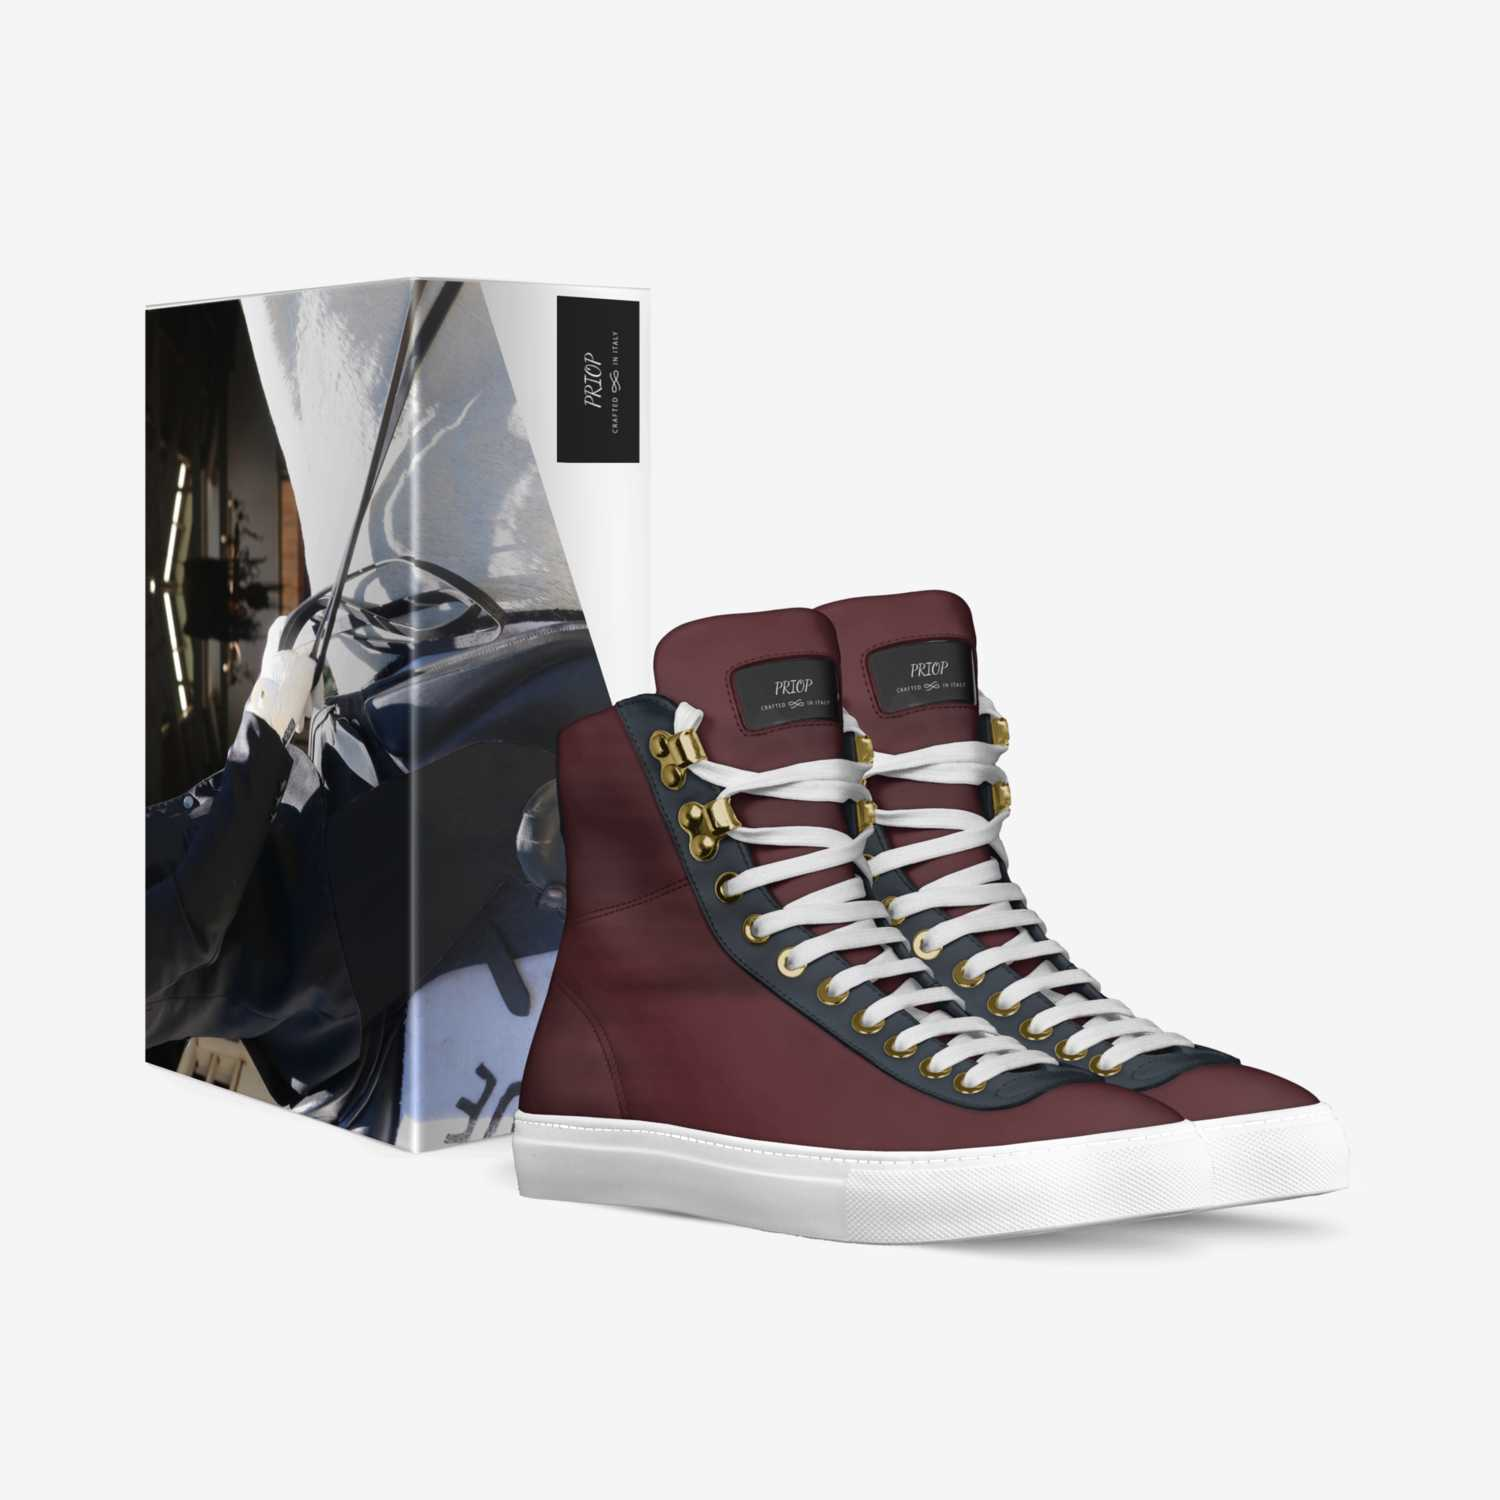 PRIOP custom made in Italy shoes by Thepriopgroup.riddick | Box view